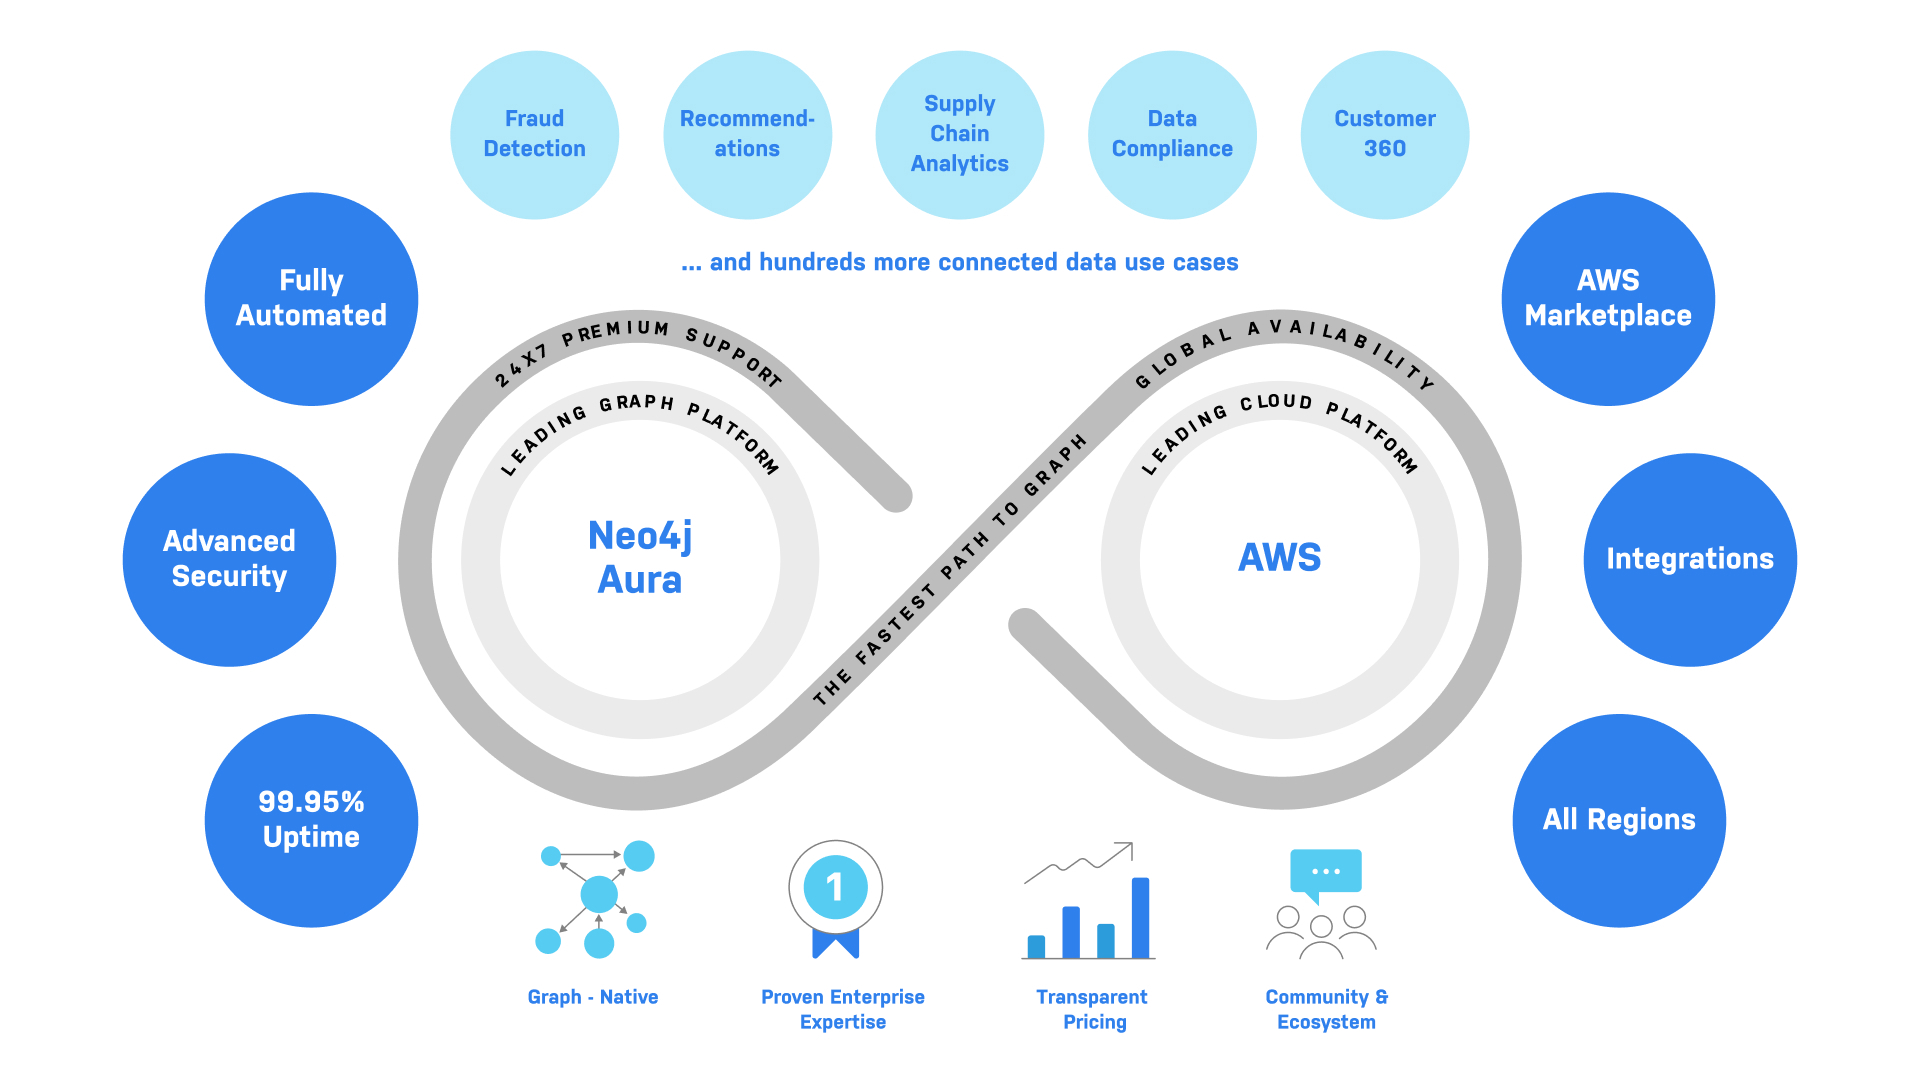 Levi Strauss & Co., Sainsbury's, The Orchard, and More Harness Neo4j Aura on AWS